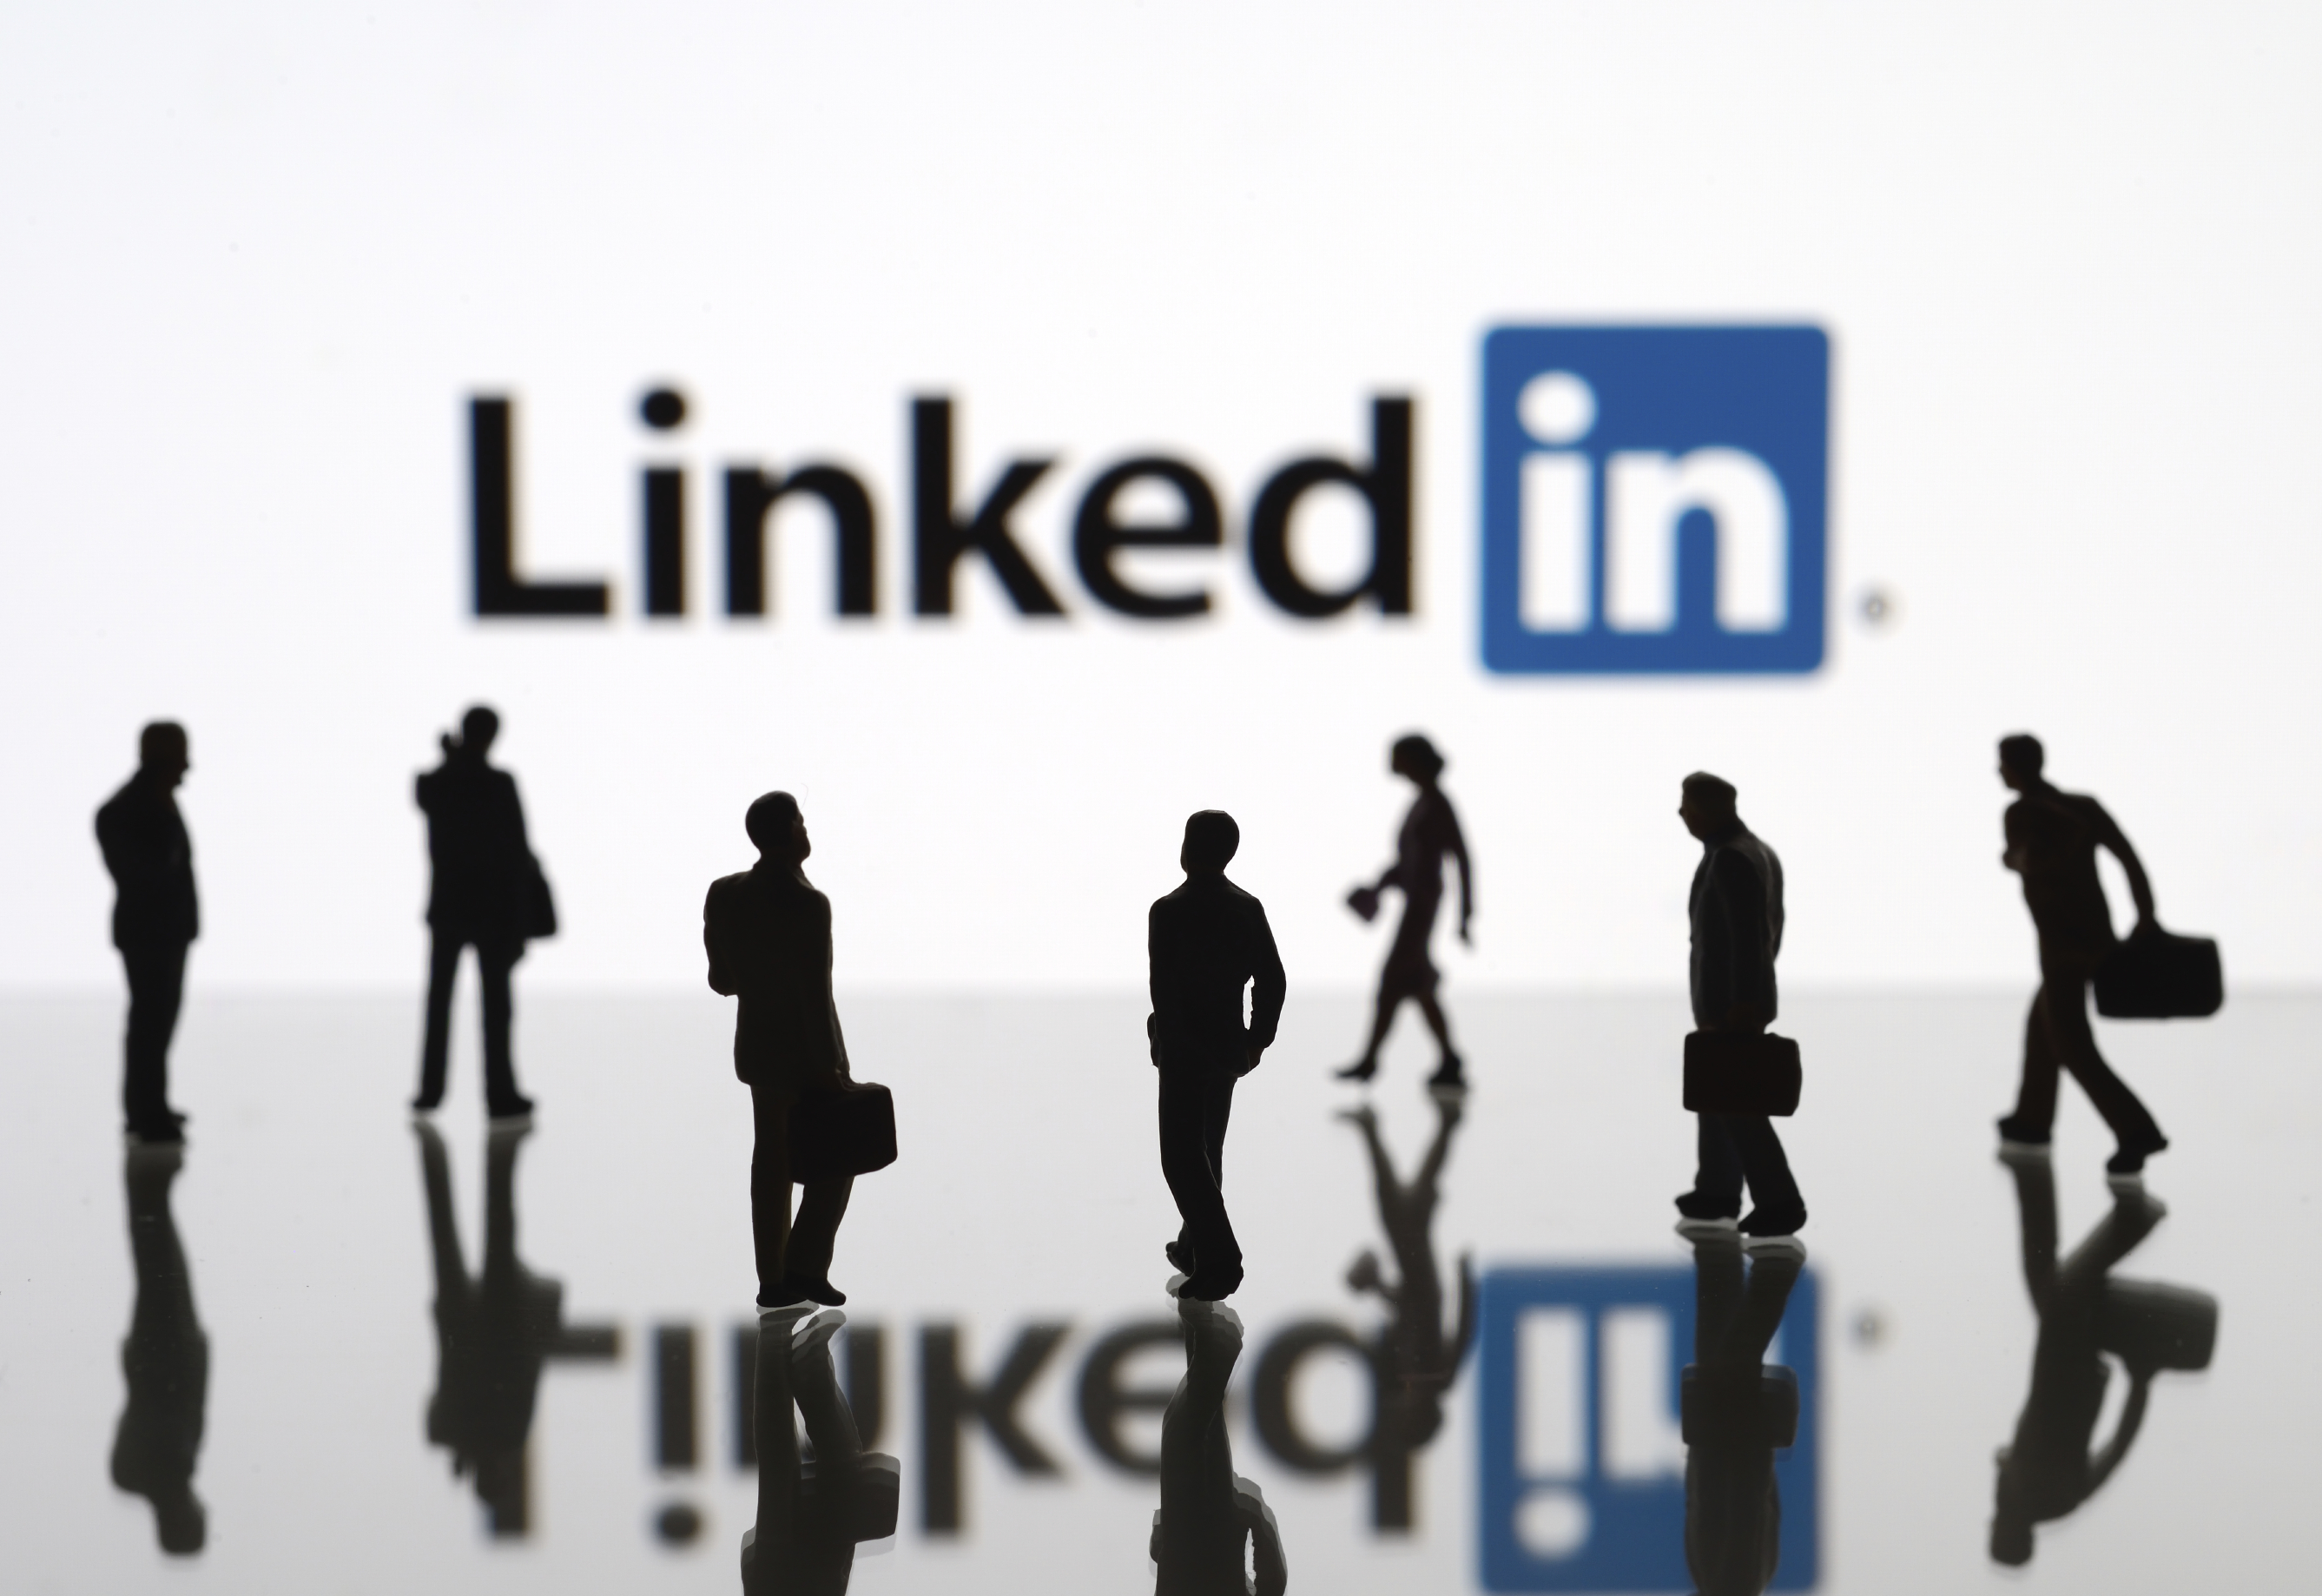 6 Ways to Find and Attract Leads Using LinkedIn